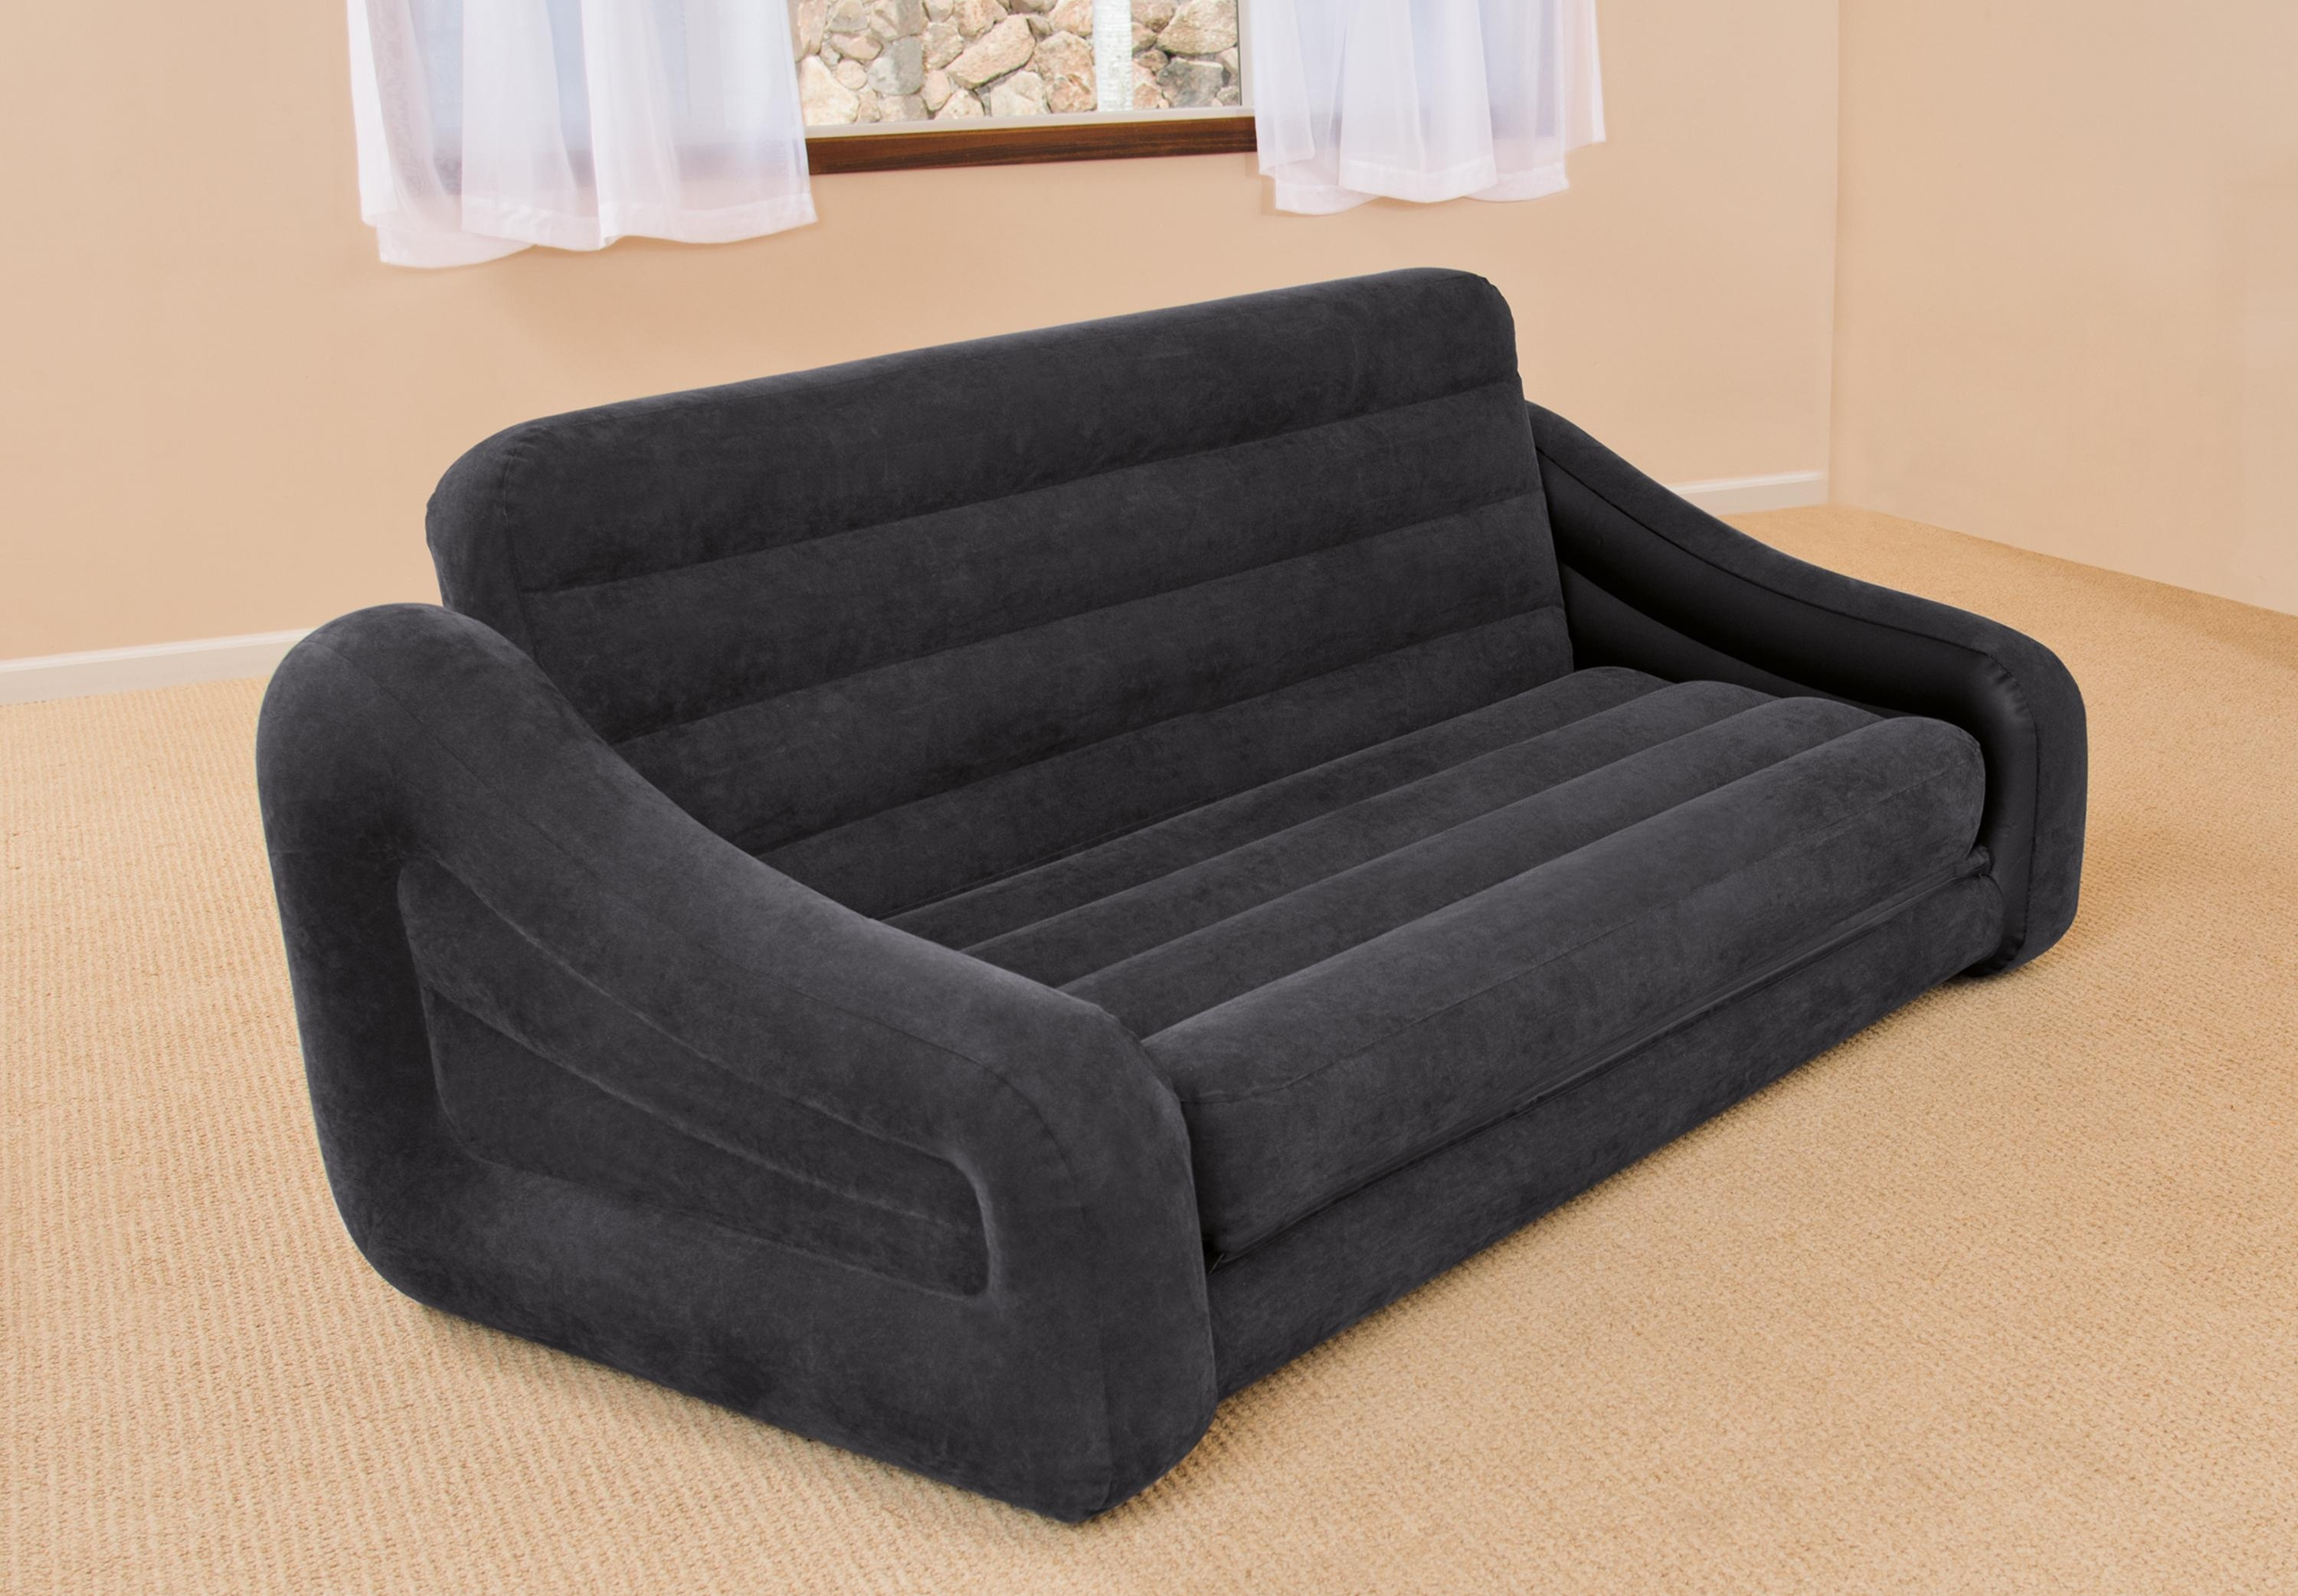 20 collection of pull out queen size bed sofas sofa ideas Loveseat with pullout bed